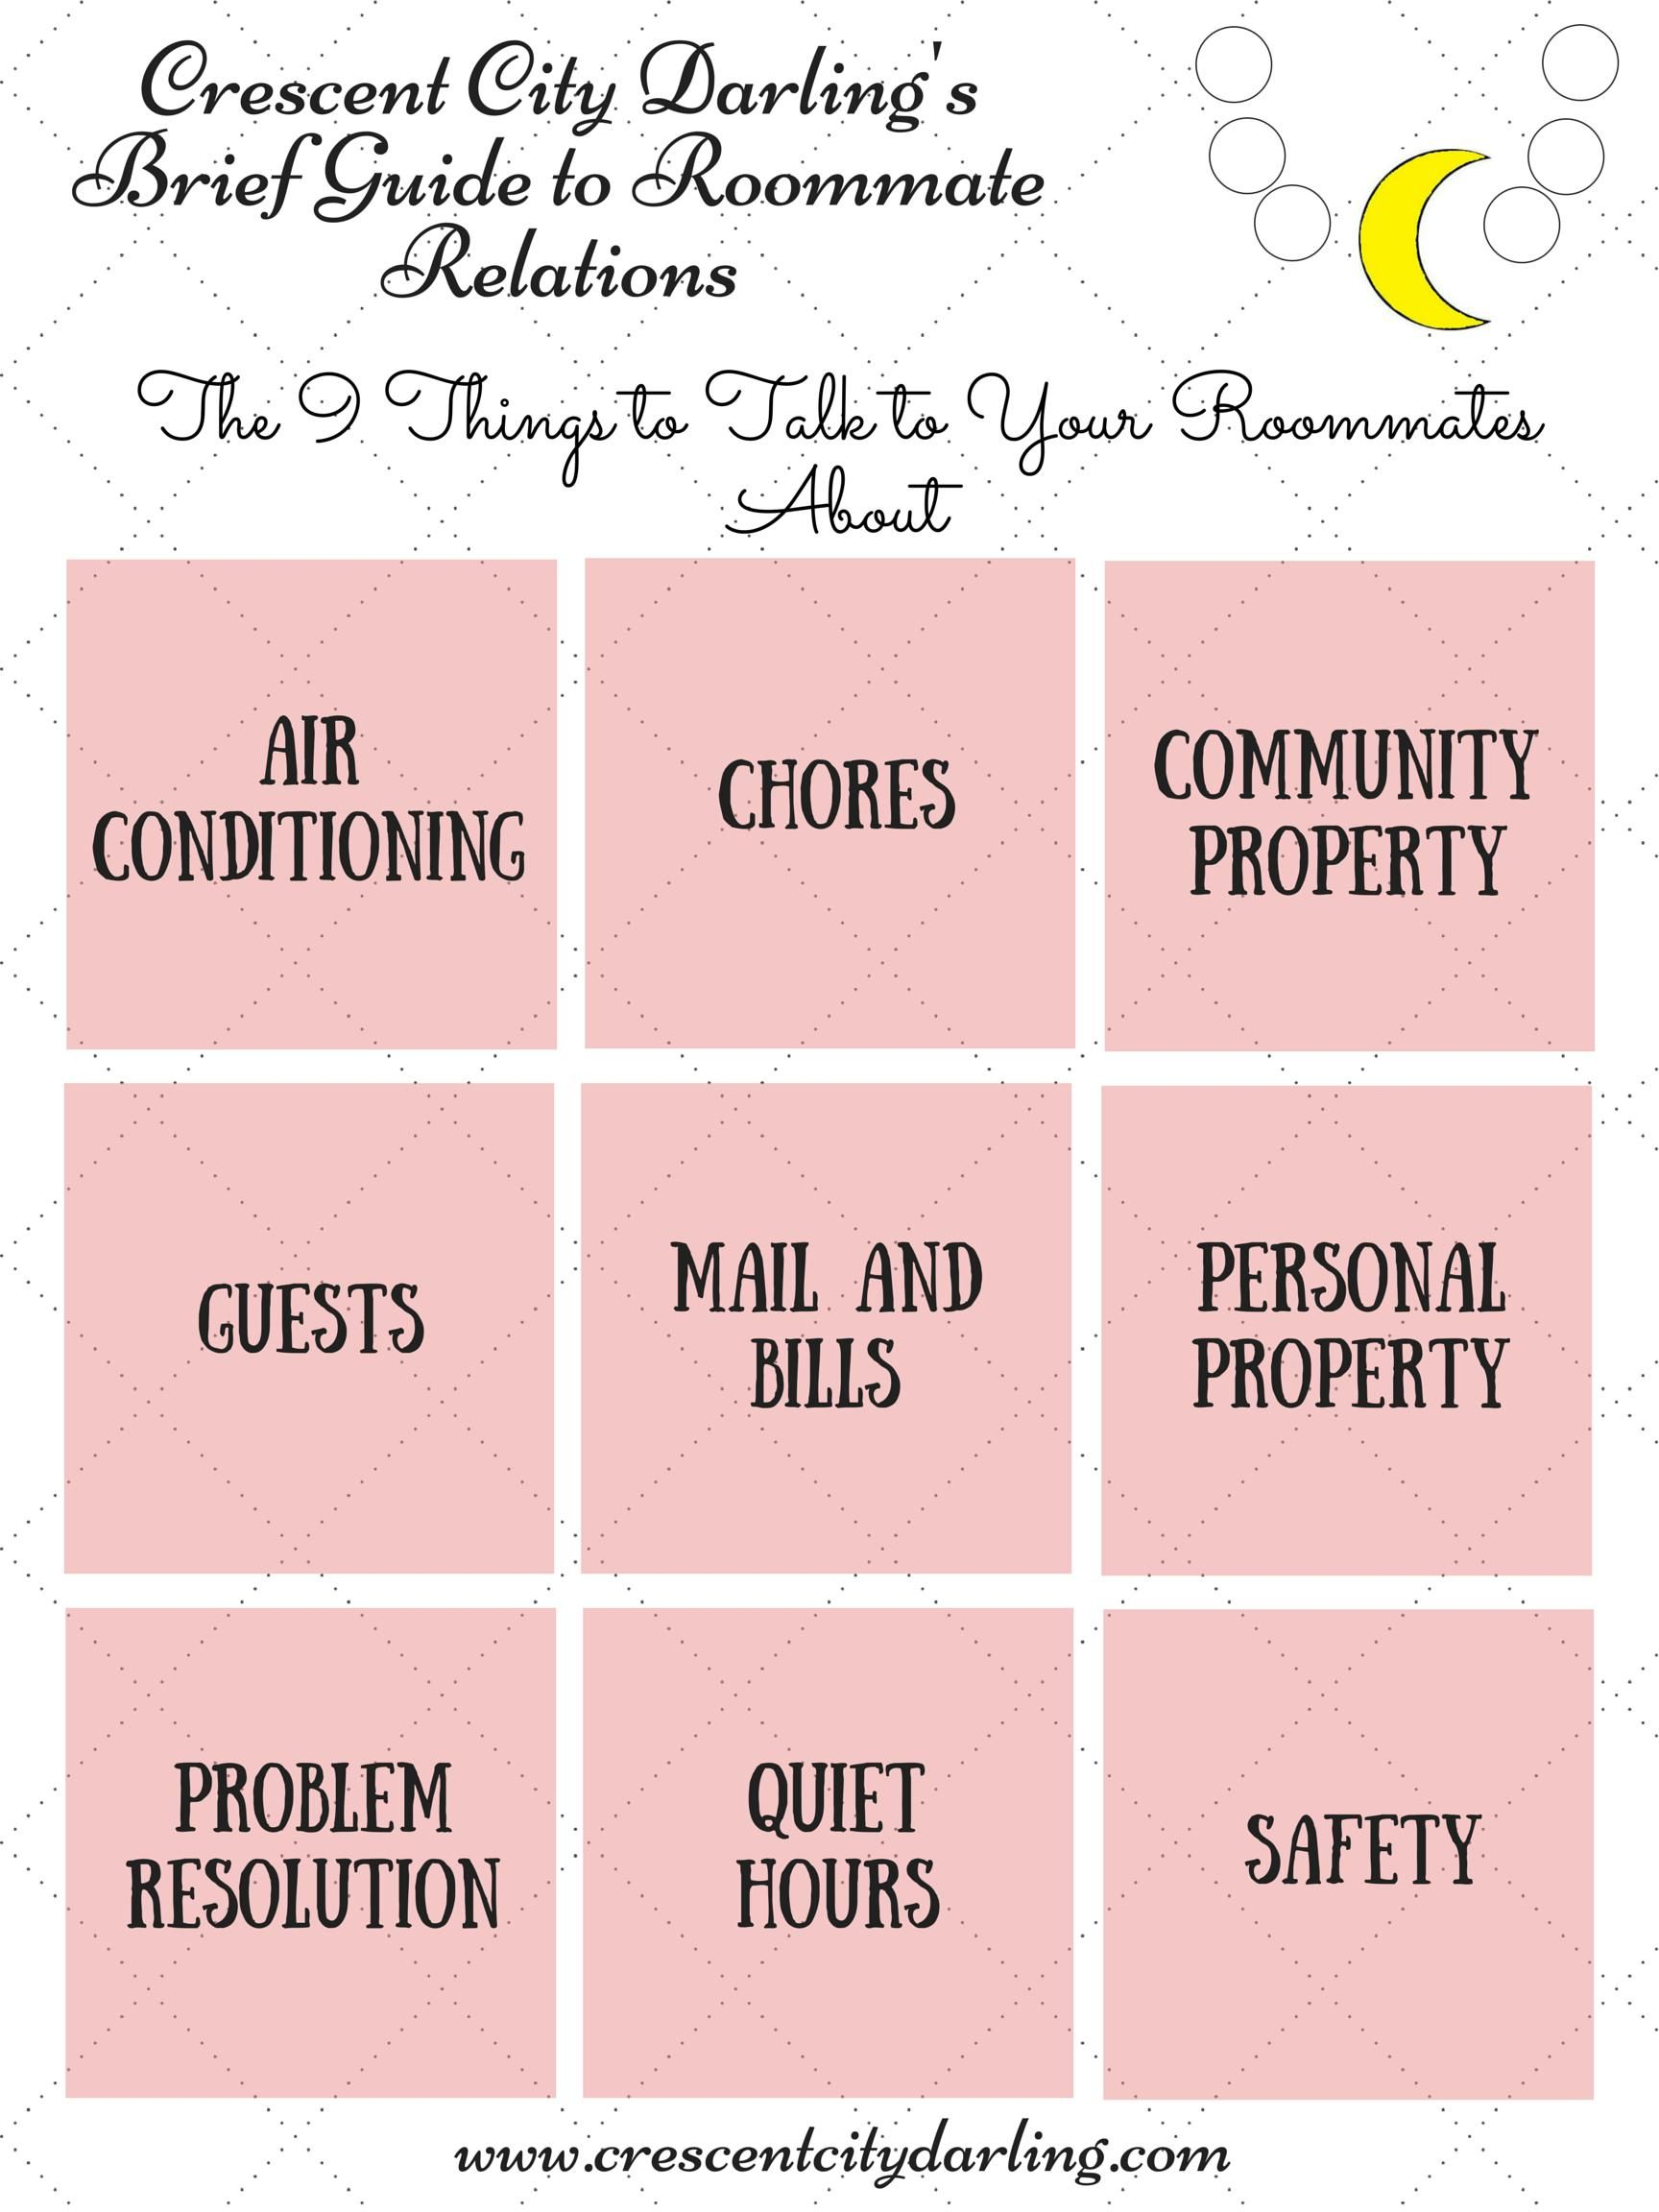 A Guide To Roommate Relations For Those Moving Out For The